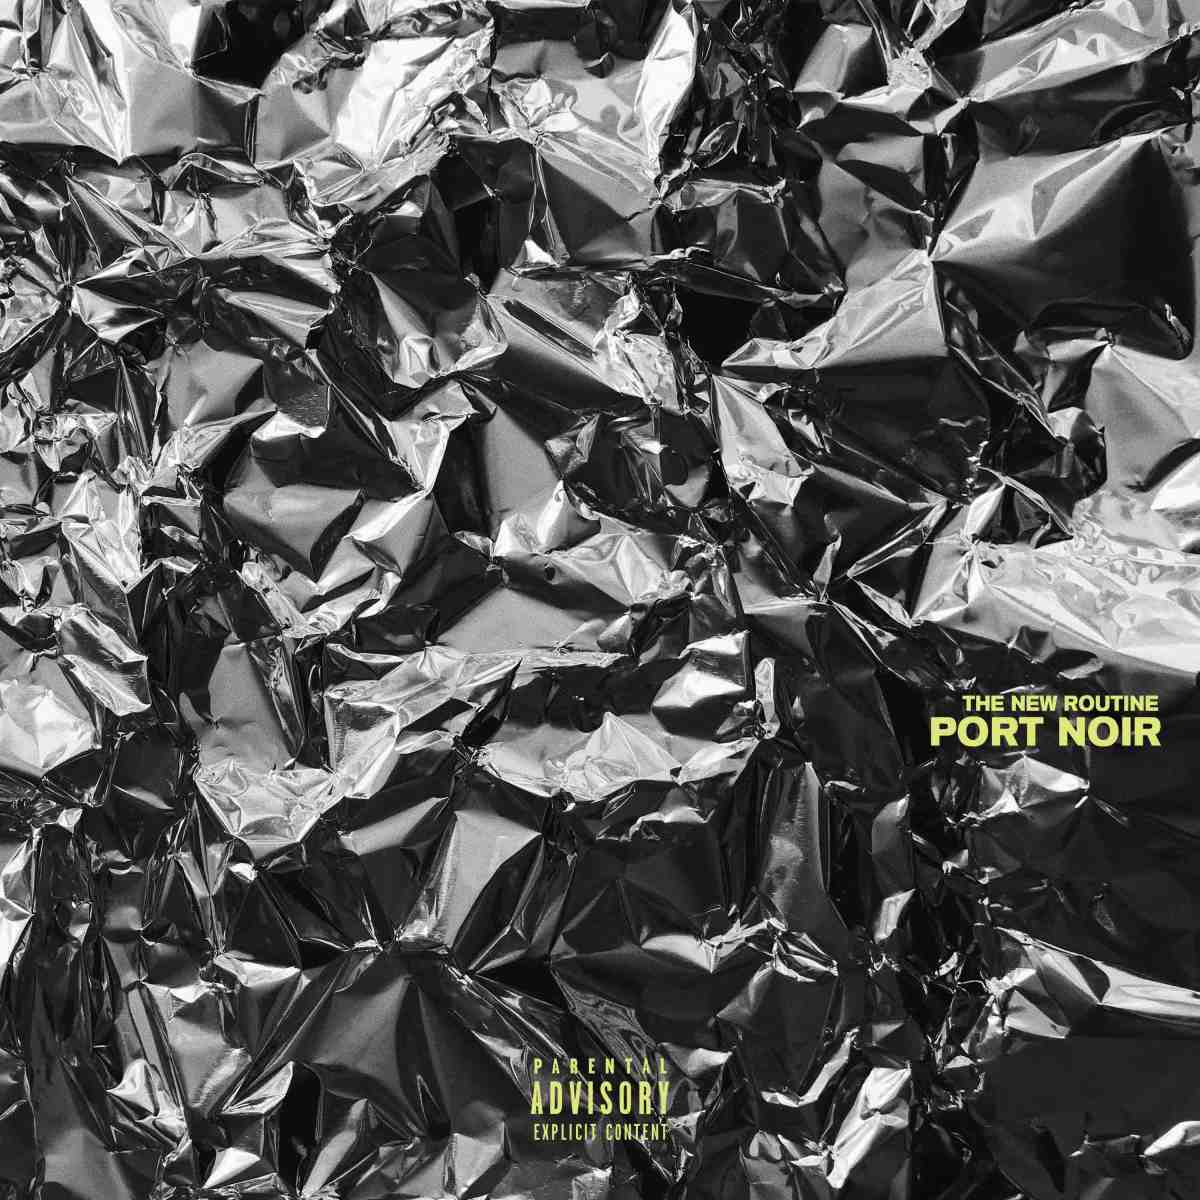 CD review PORT NOIR 'The New Routine'